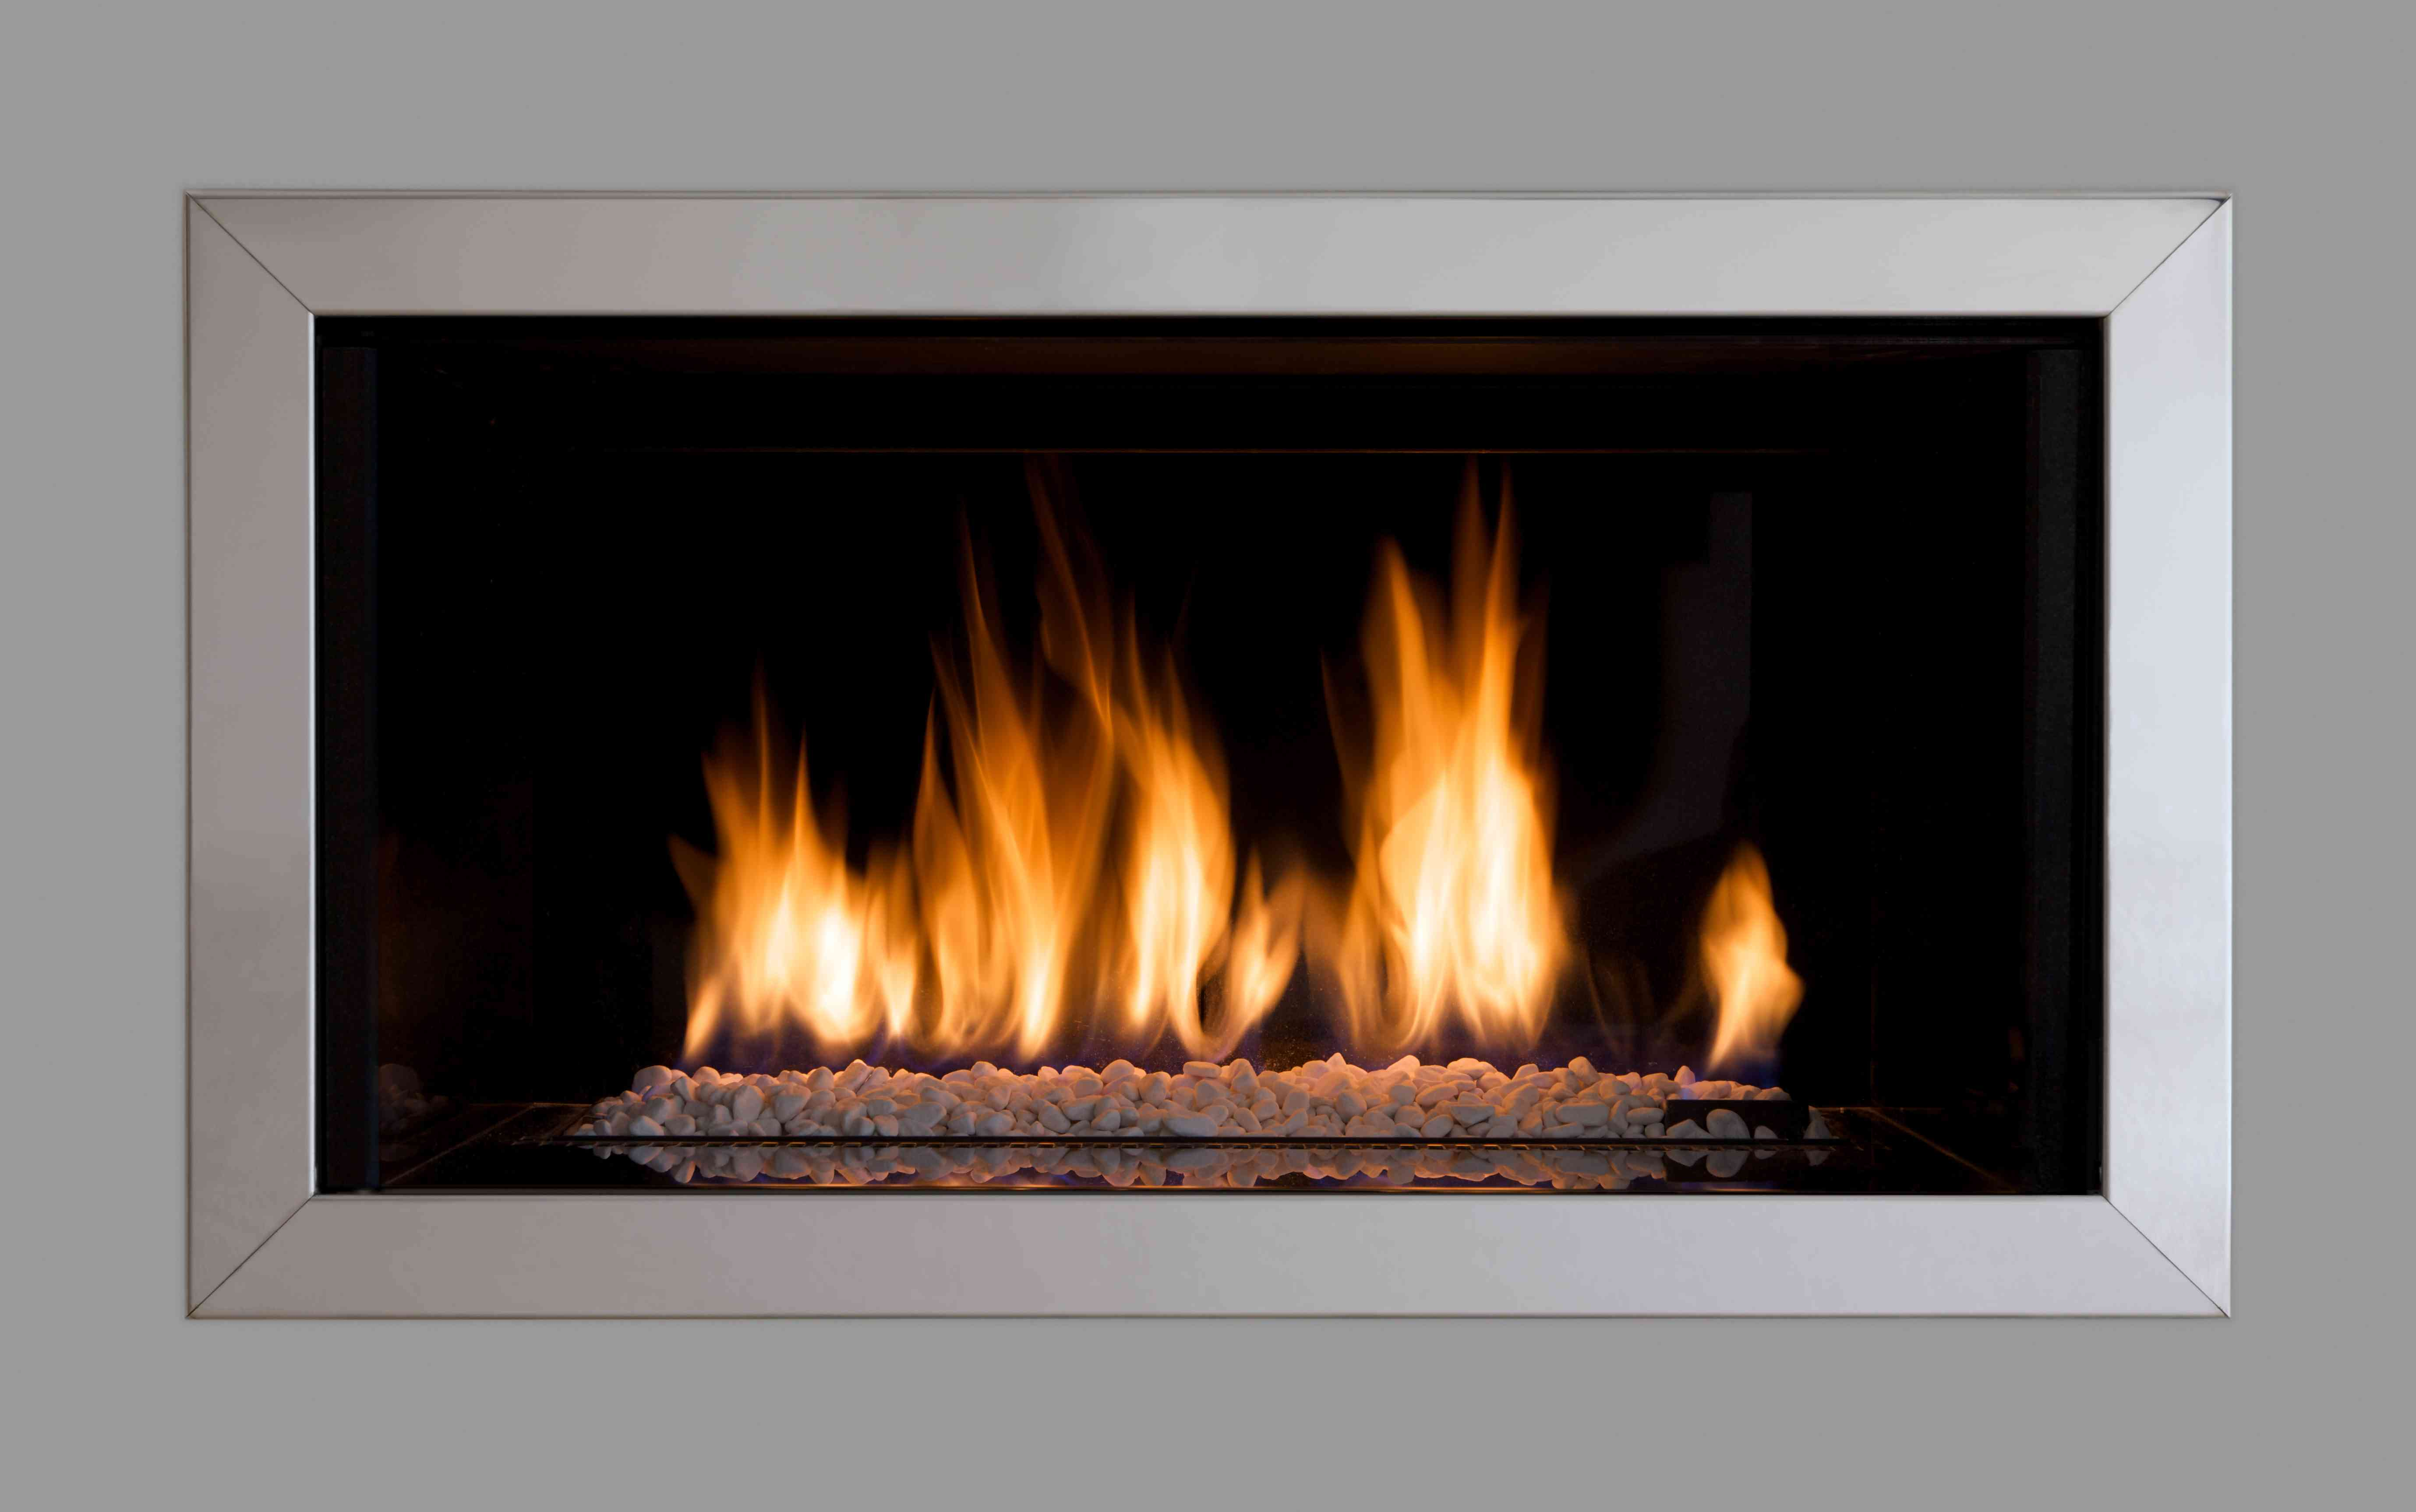 Rectangular gas fireplace with a gray steel border